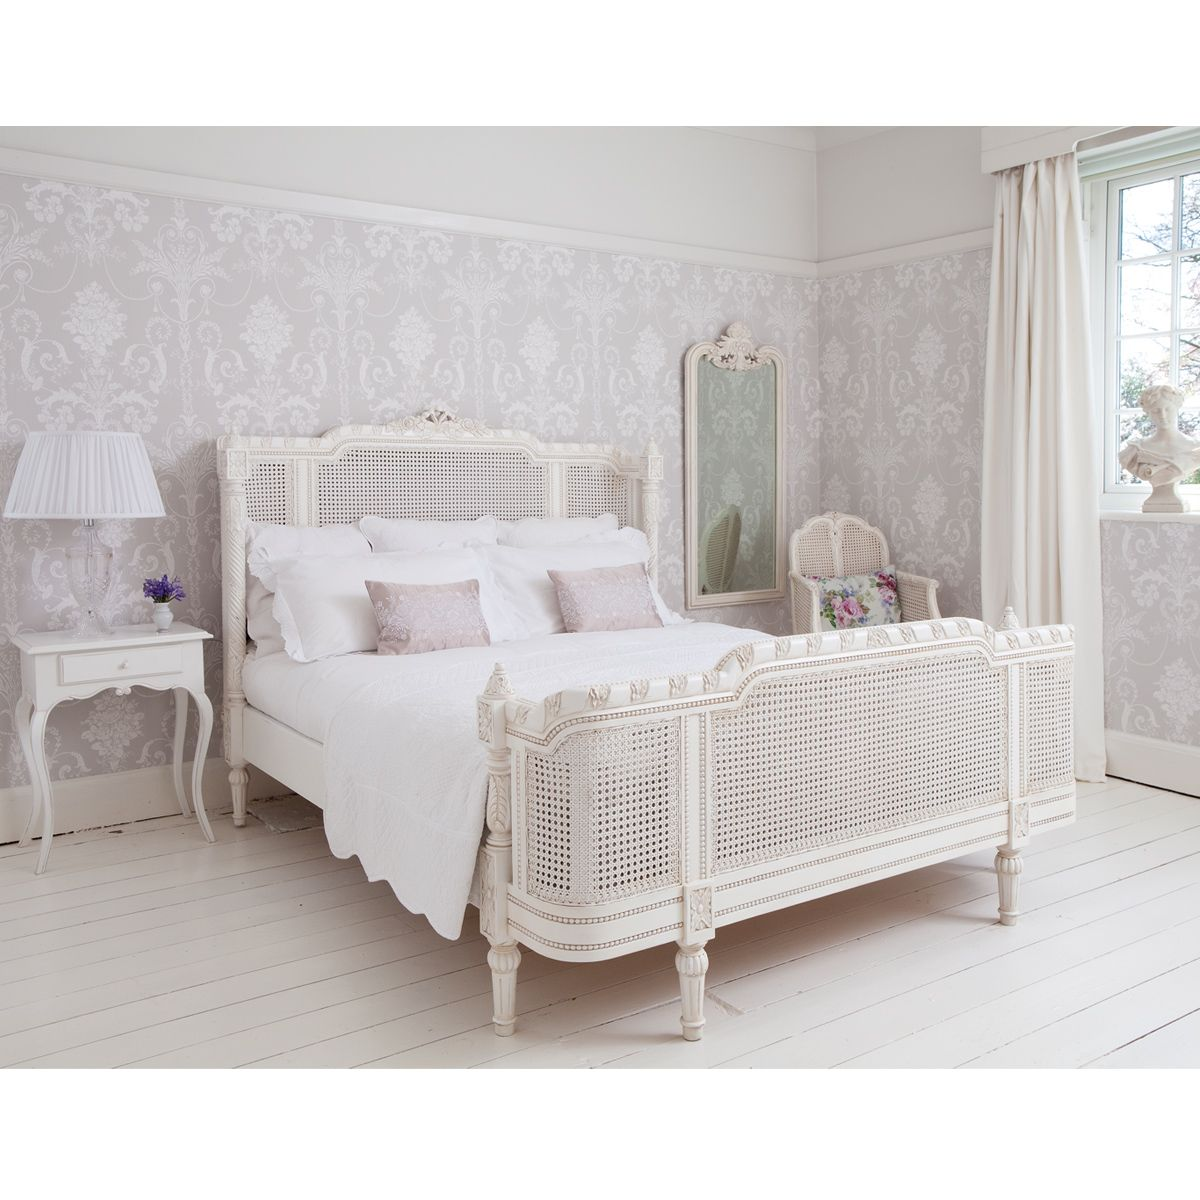 Provencal Lit Lit White Rattan Bed (King Size) (Image 2) By The French  Bedroom Company